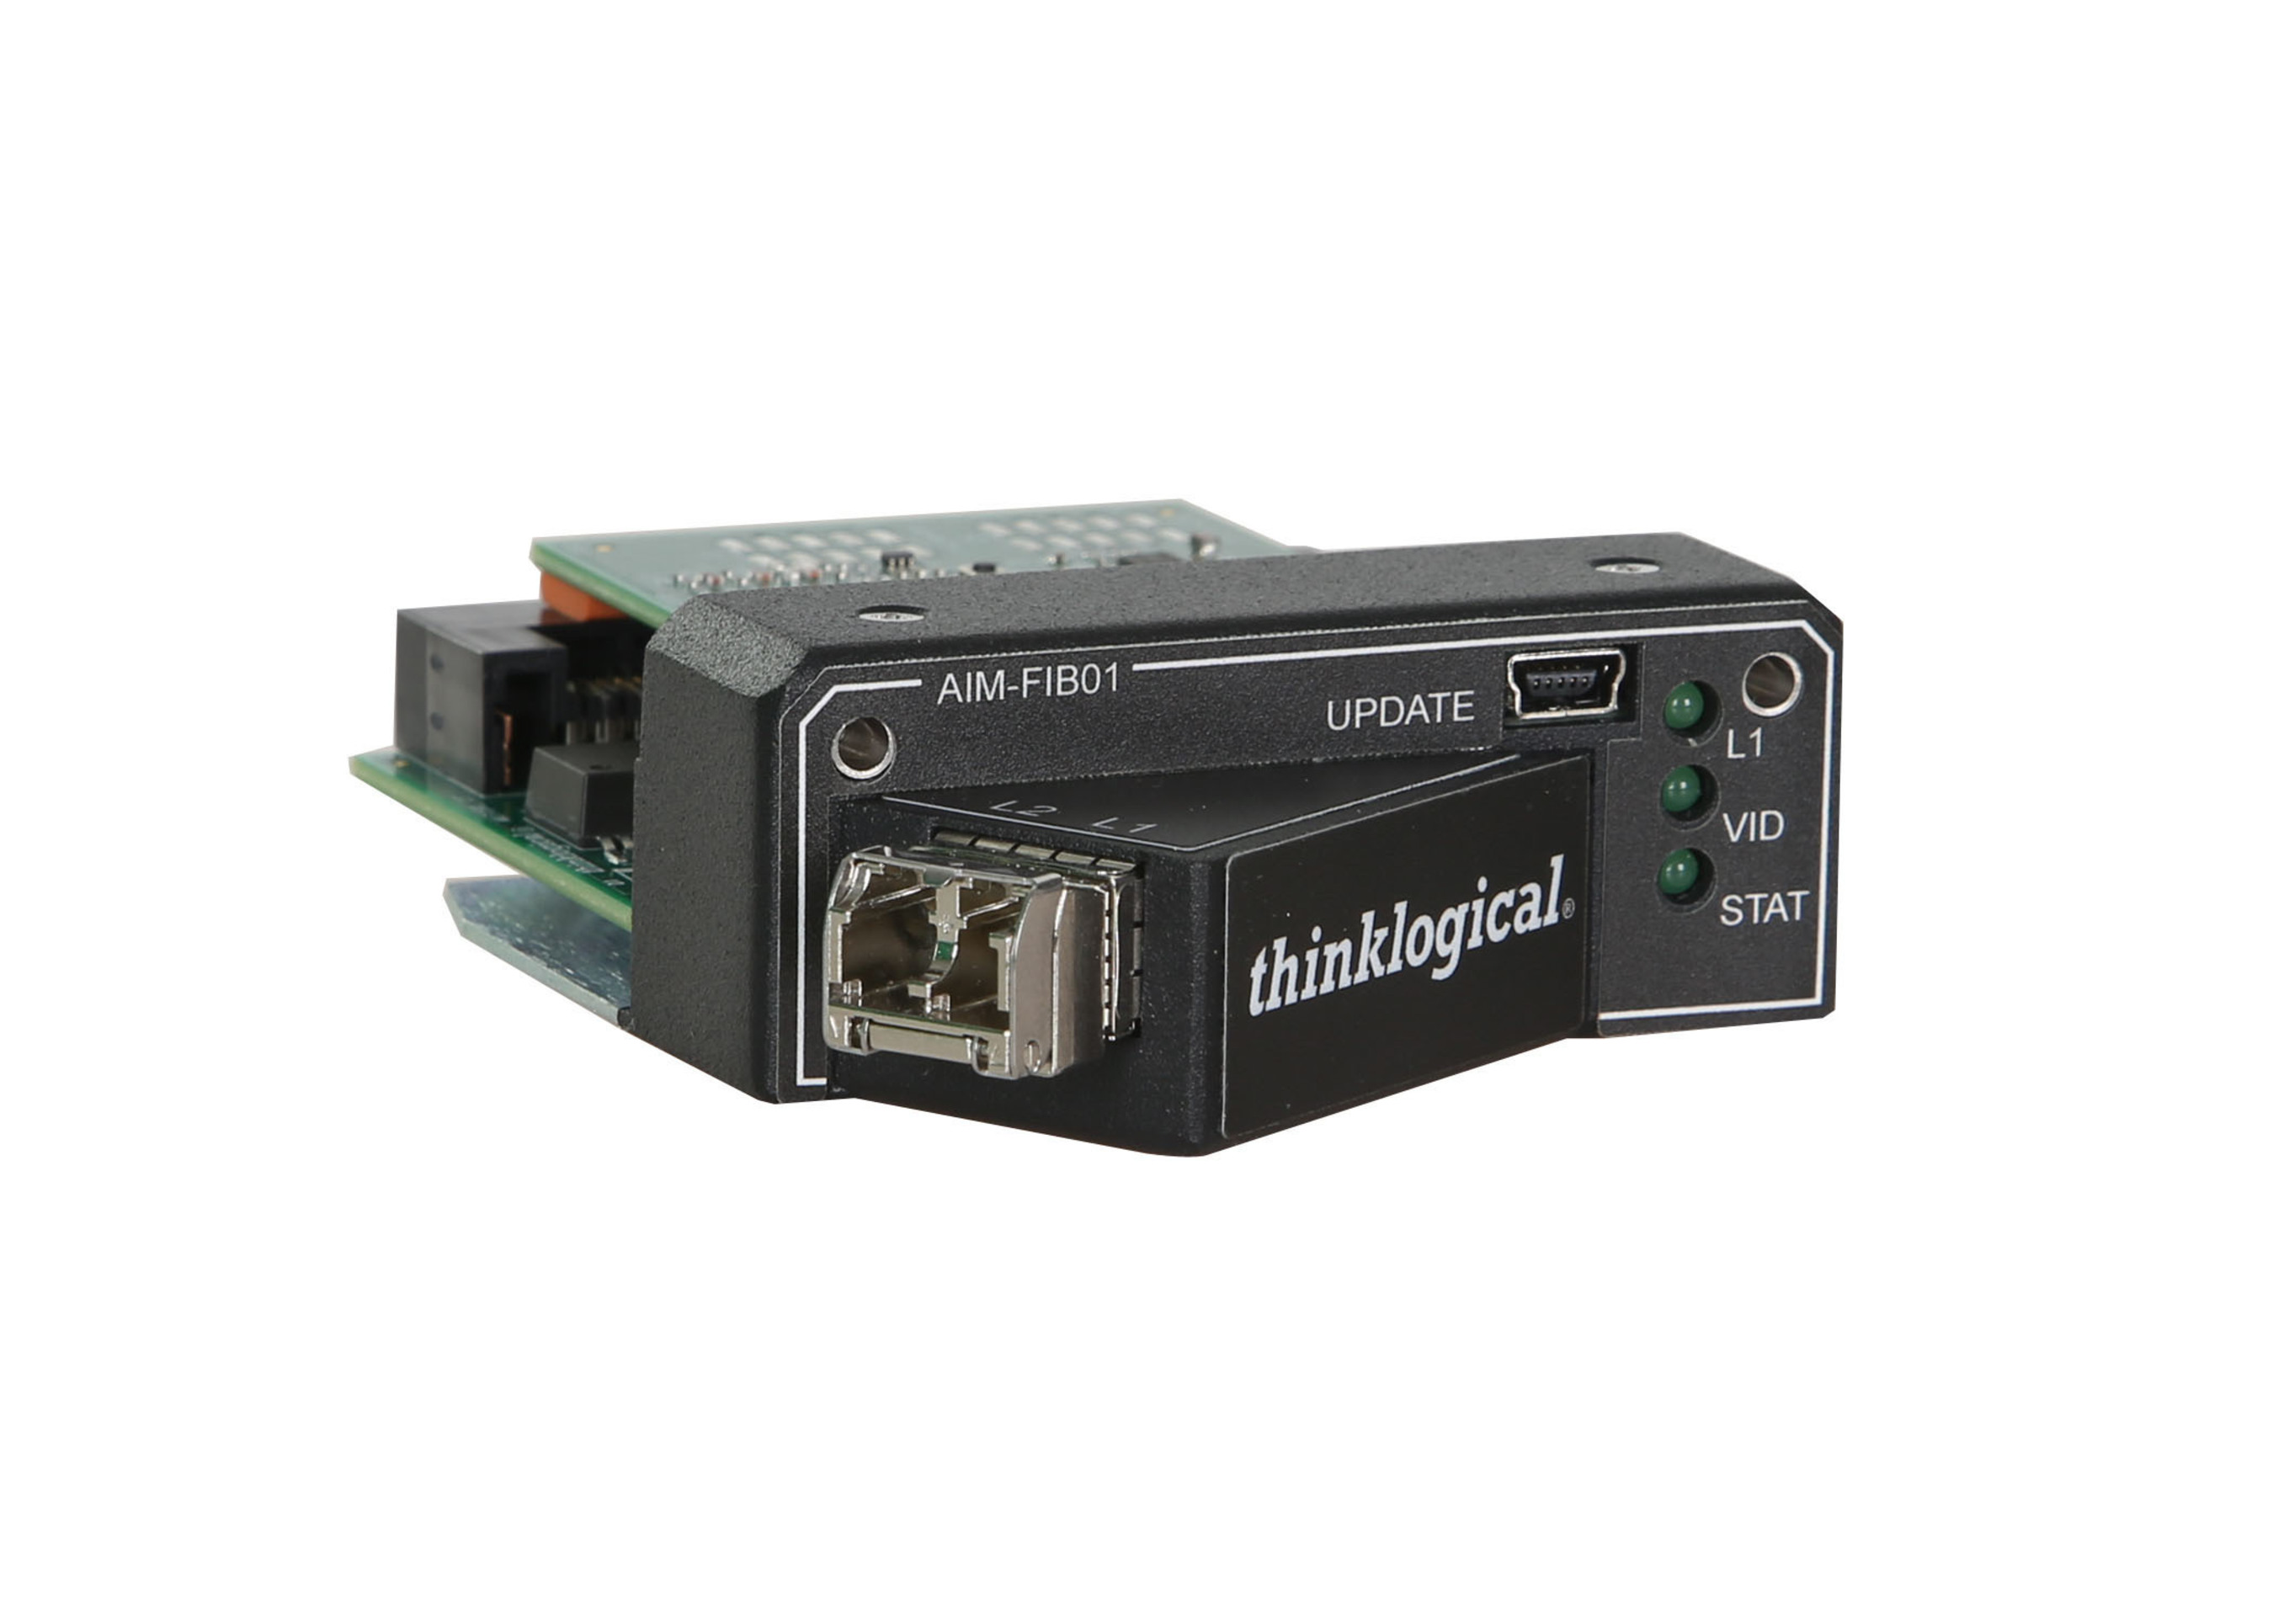 New Thinklogical Direct Input Fiber Optic Card for Christie ENTERO HB Video Wall Displays   (PRNewsFoto/Thinklogical LLC)